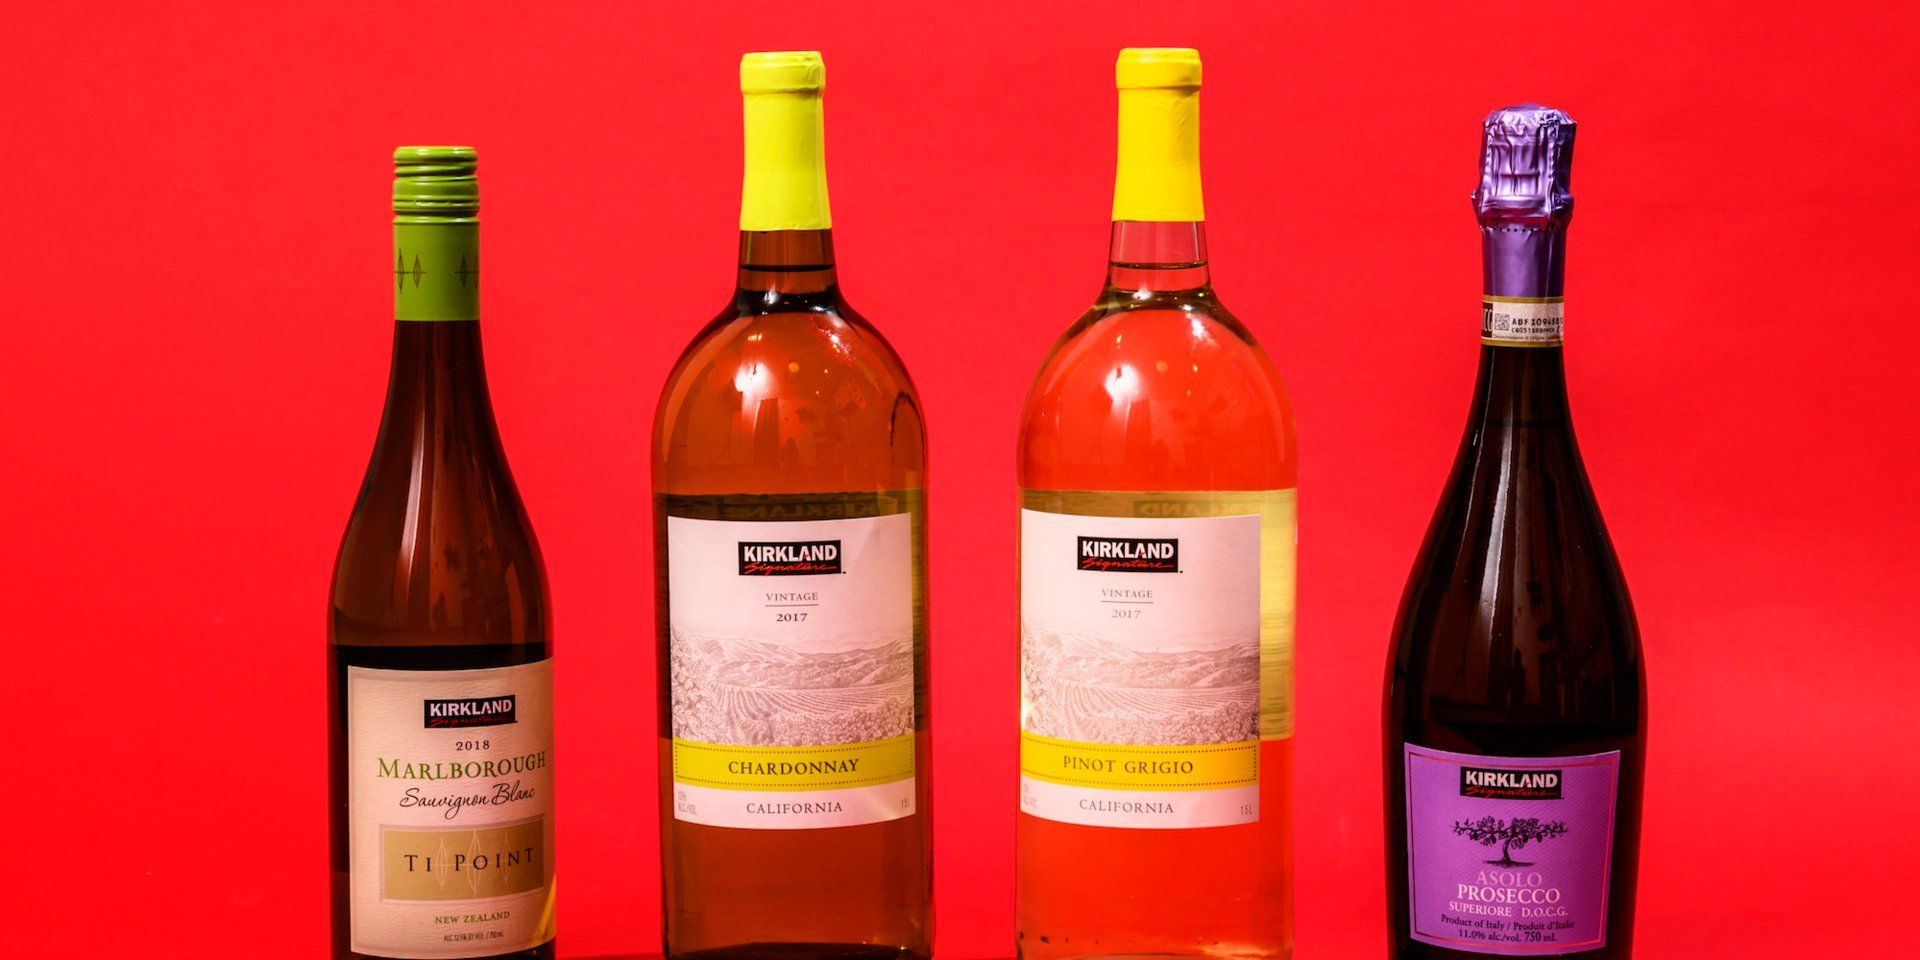 We Taste Tested 7 Of Costco S Kirkland Wines And Were Blown Away By Their Price And Quality Here S How They Ranked From Worst To Best Costco Wine Wines Wine And Beer